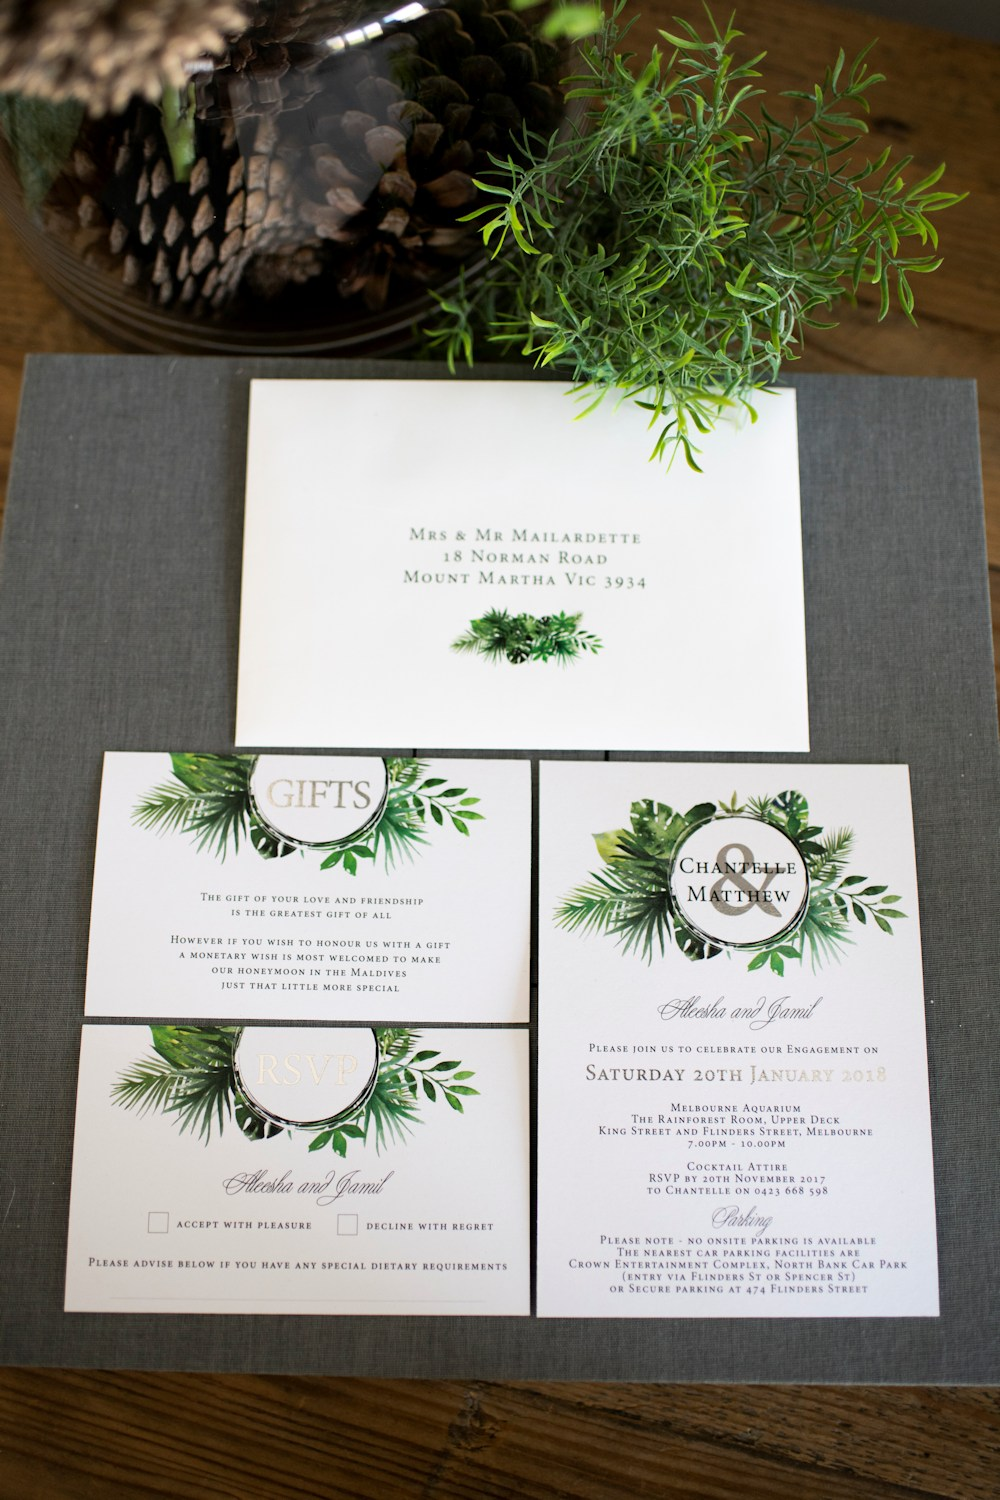 Melbourne Wedding Group Members - Wedding Invitations and Stationery